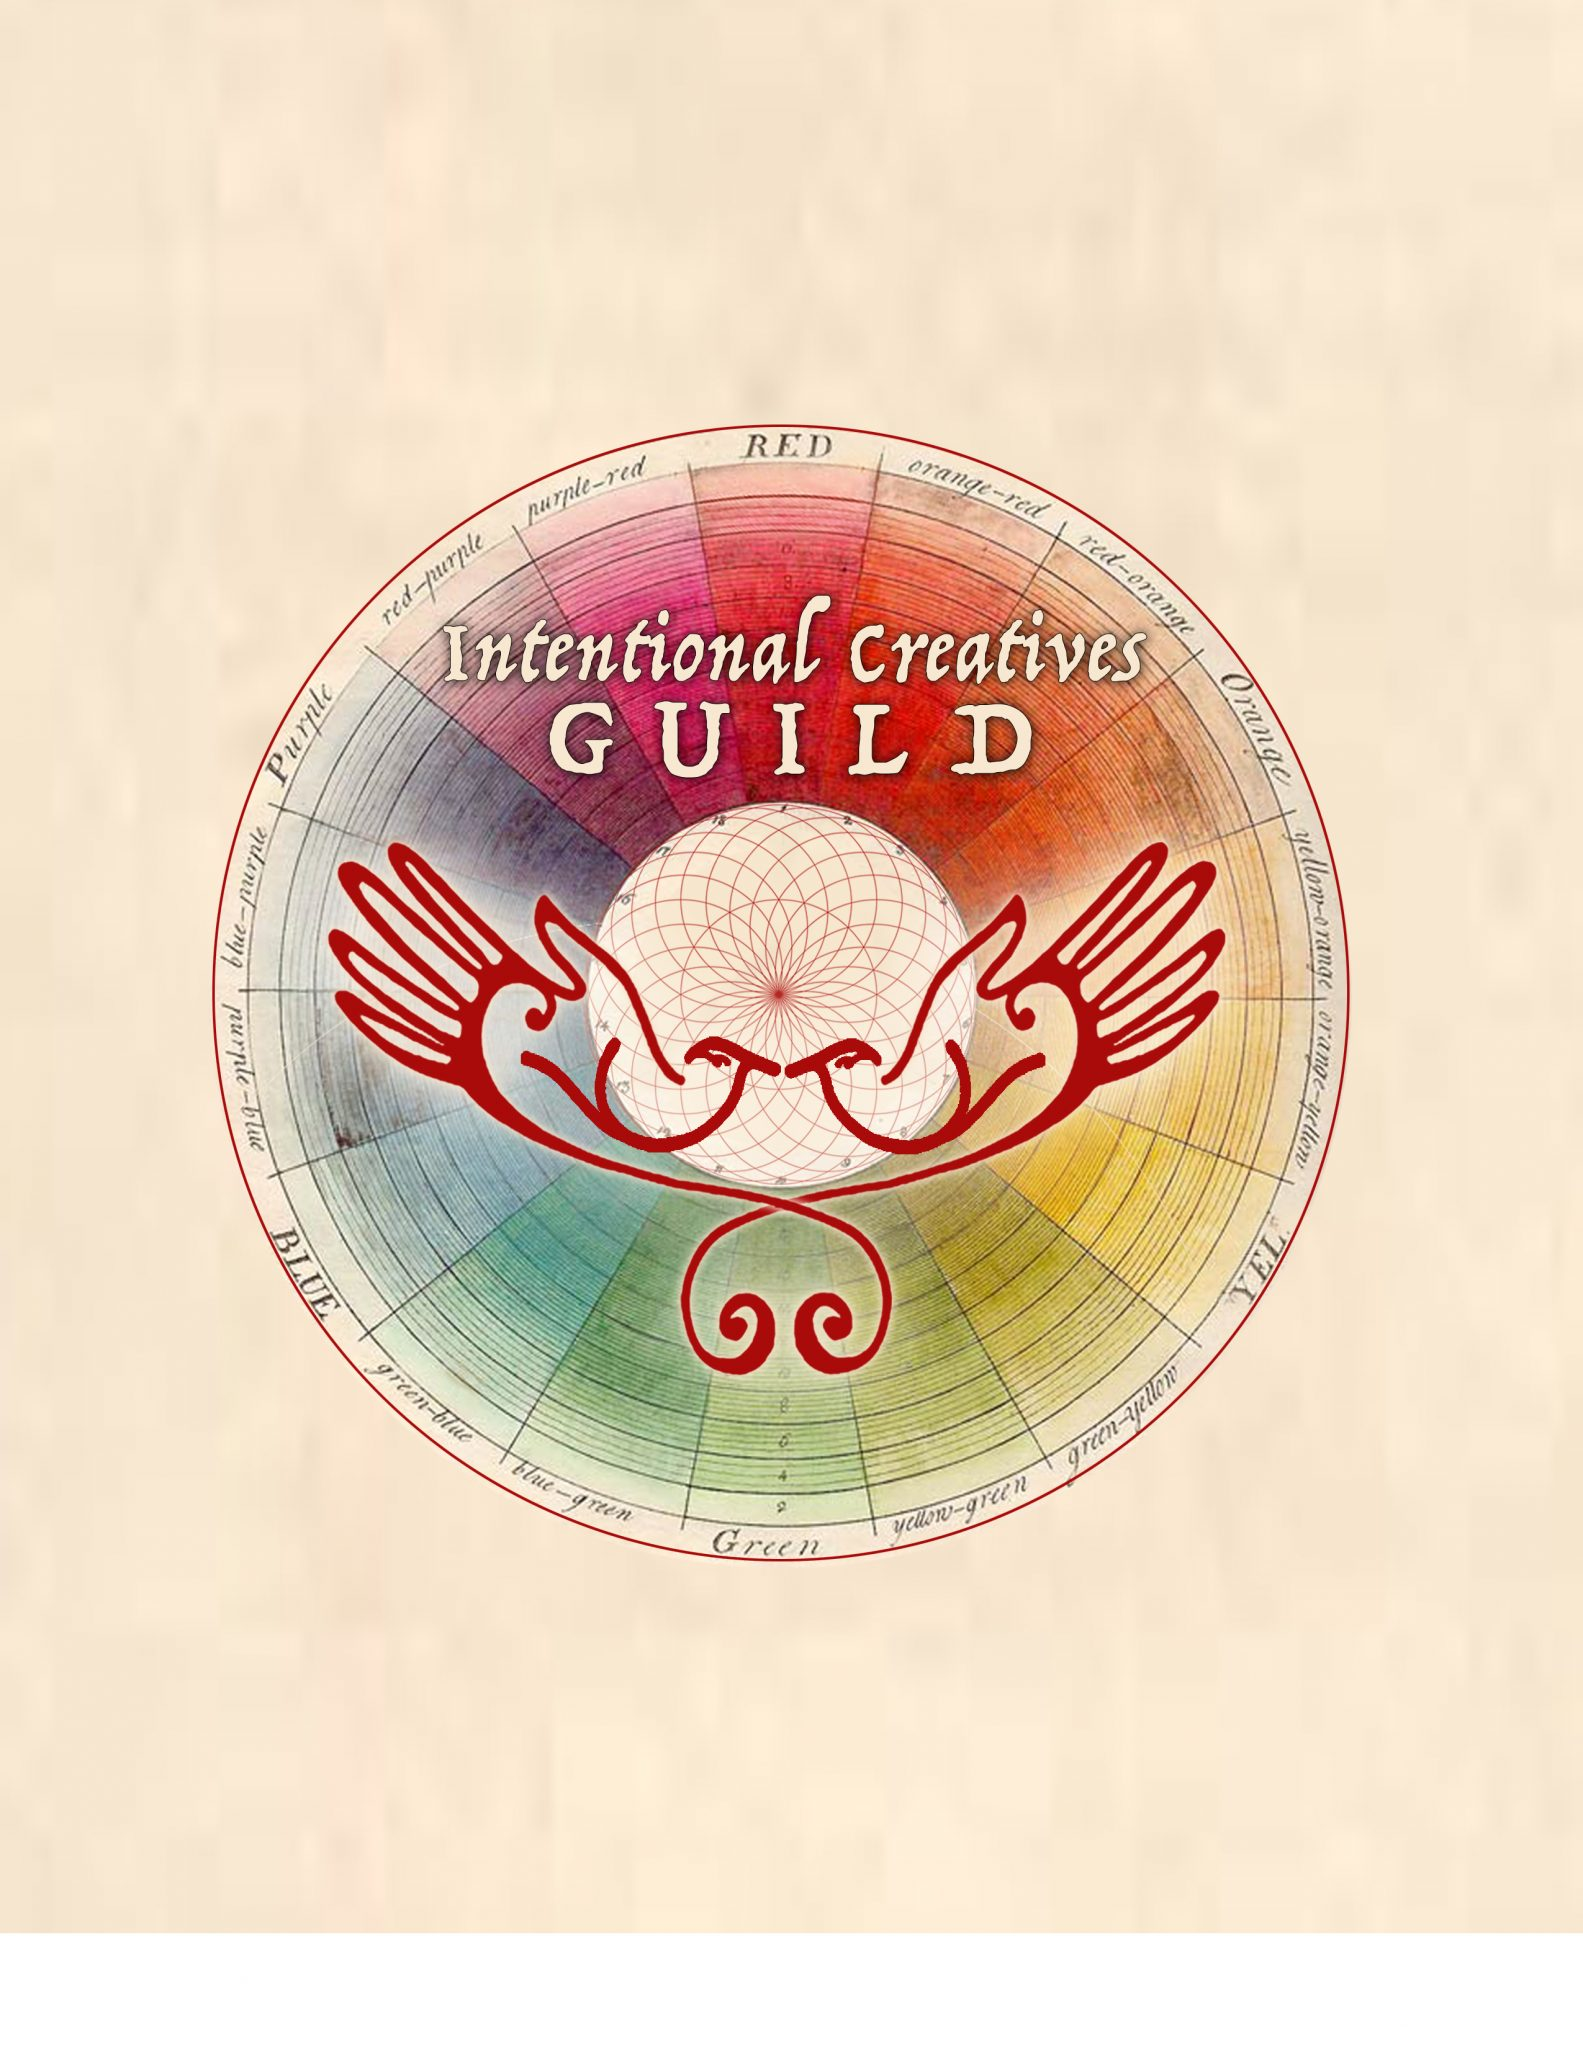 guild-of-intentional-creatives-logo